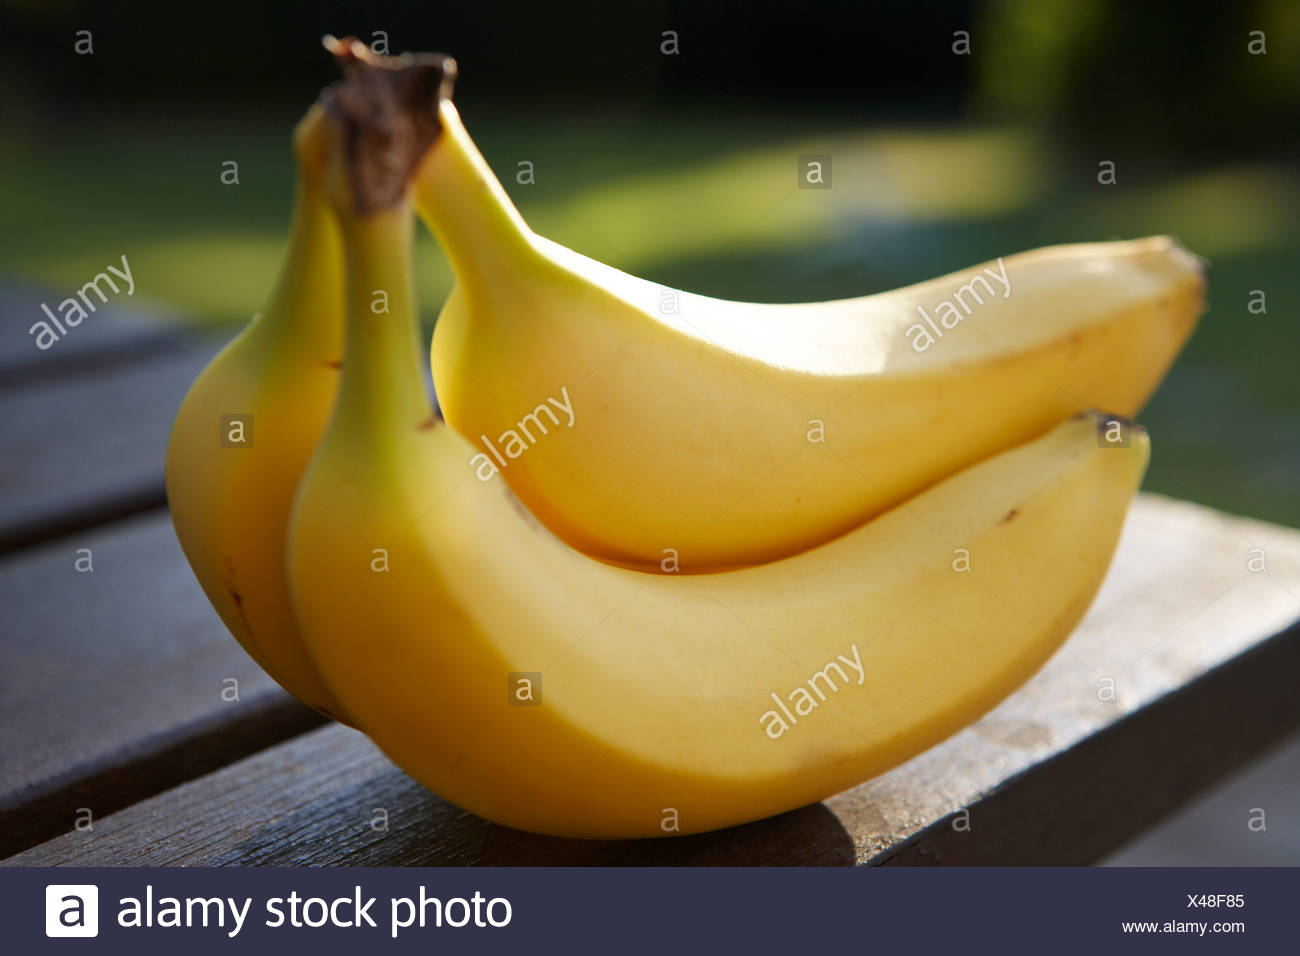 Bananas - Stock Image